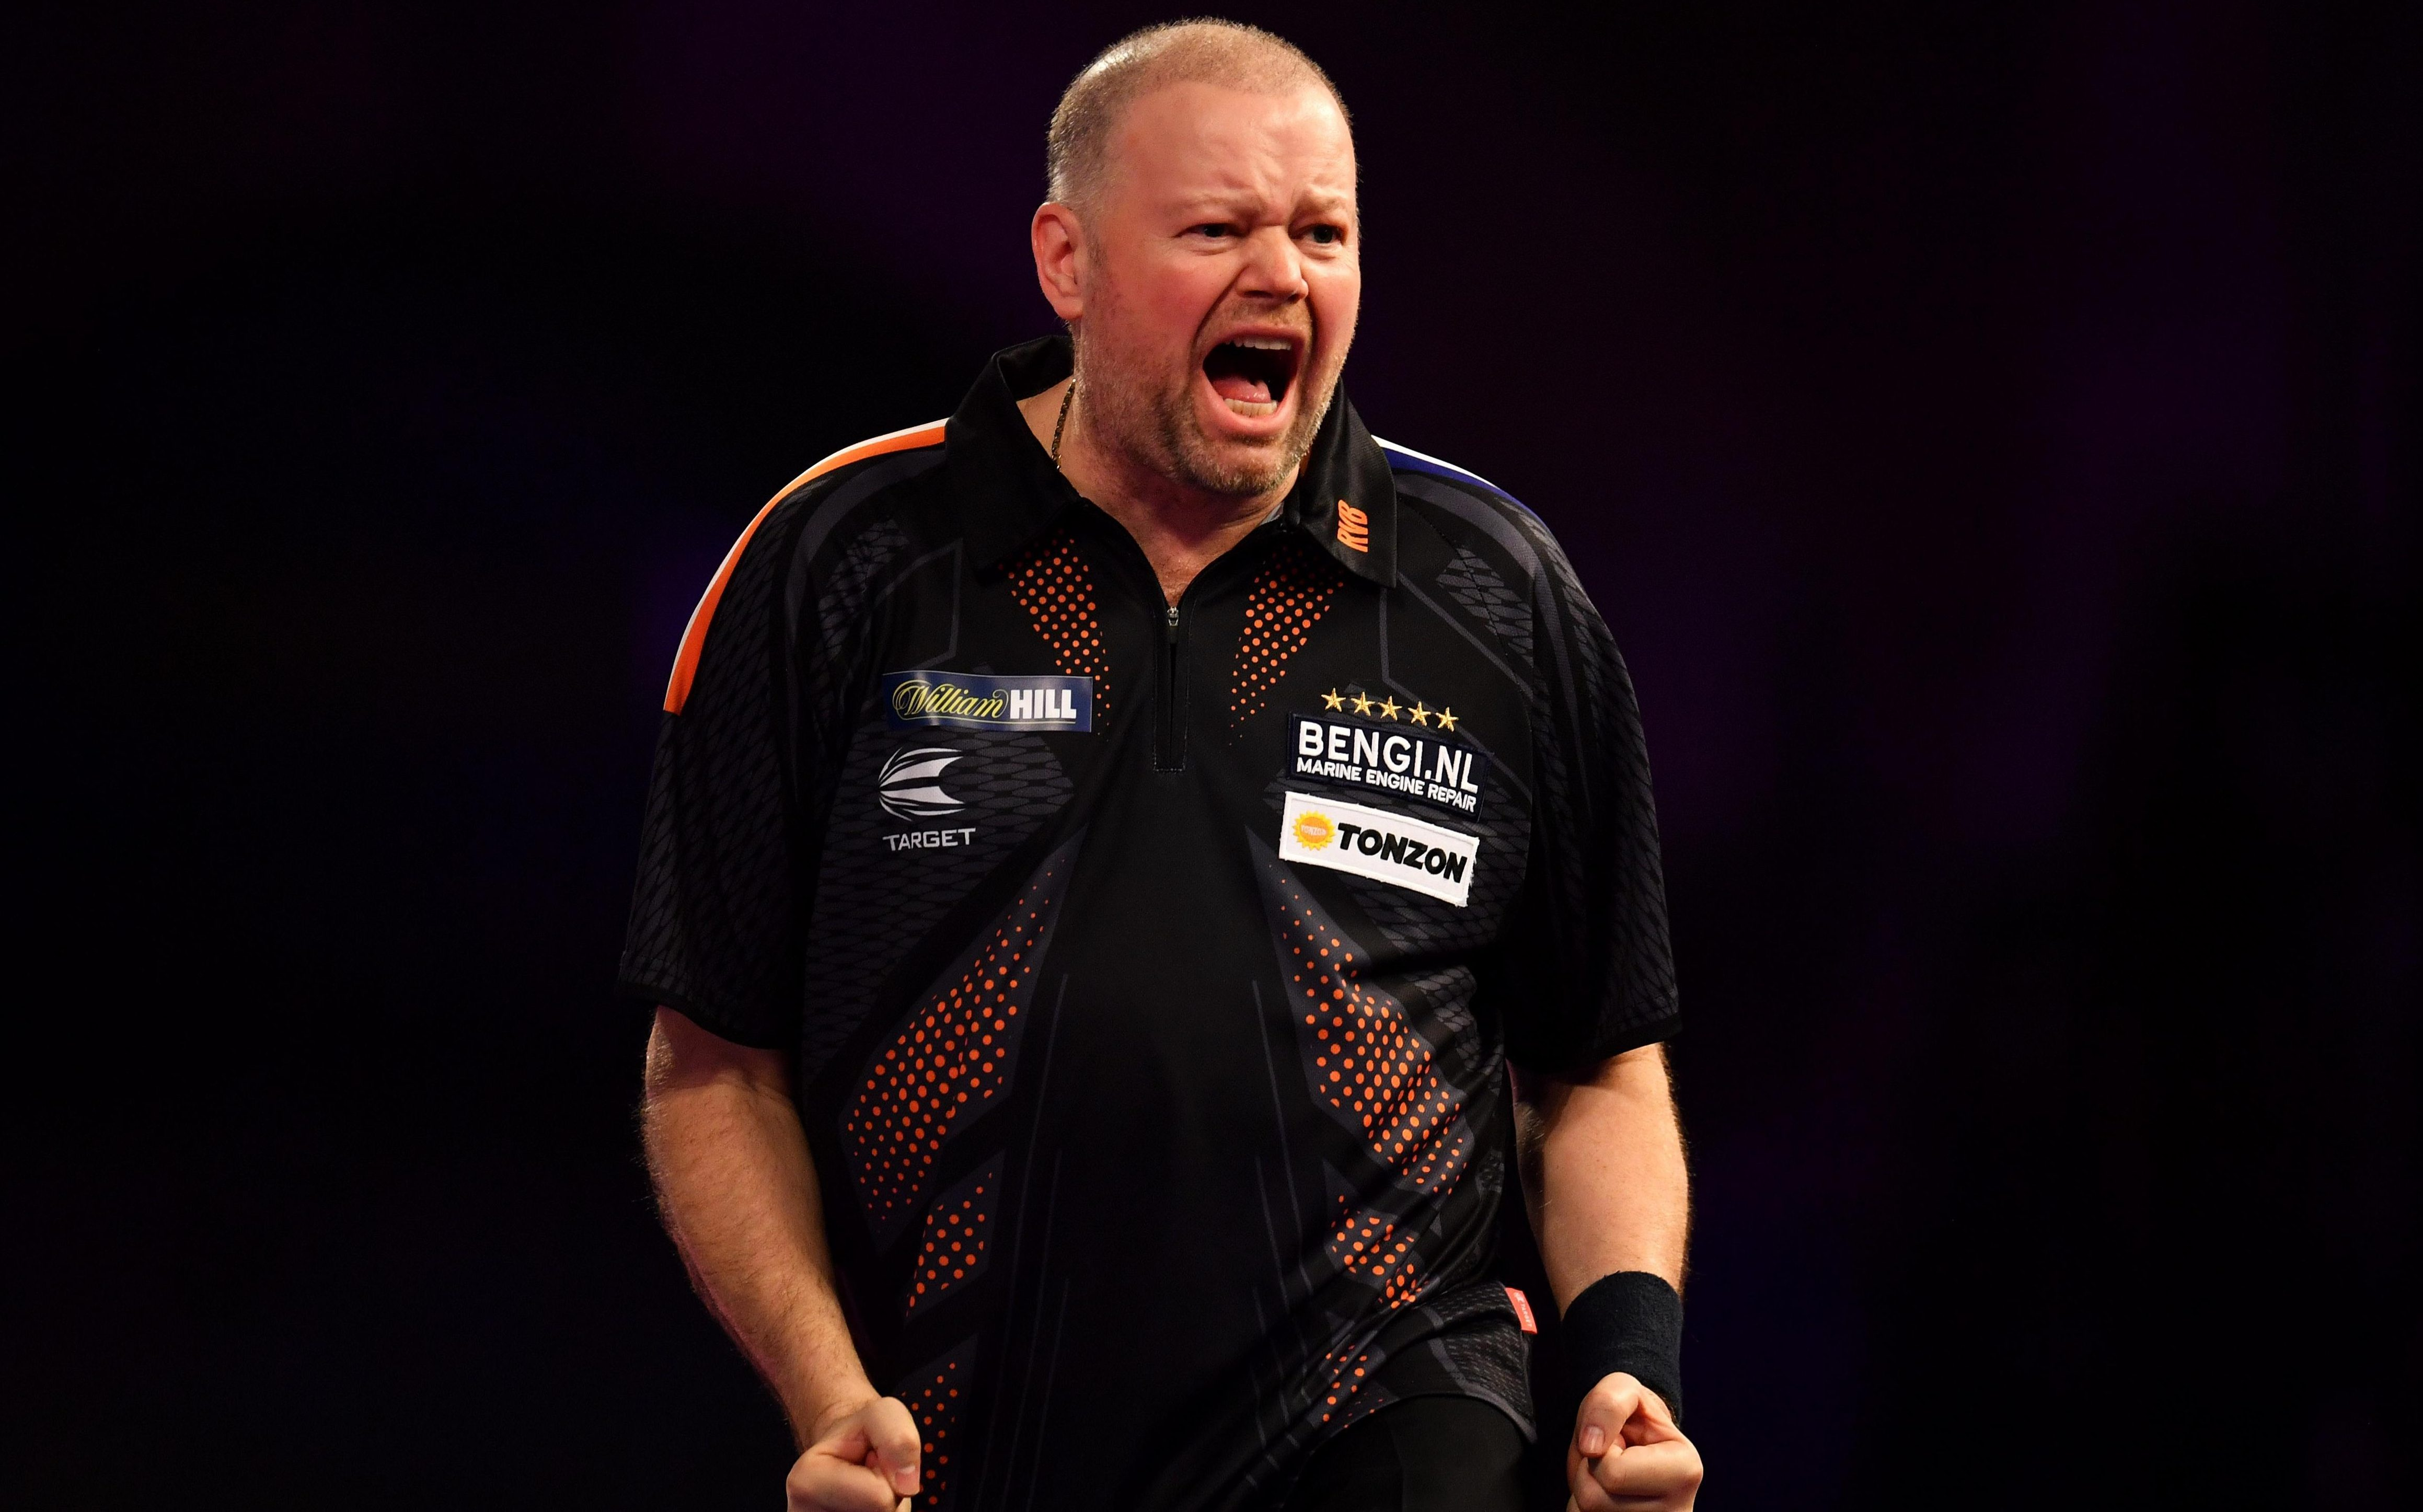 Van Barneveld, 51, will go down as one of the finest darts players in history